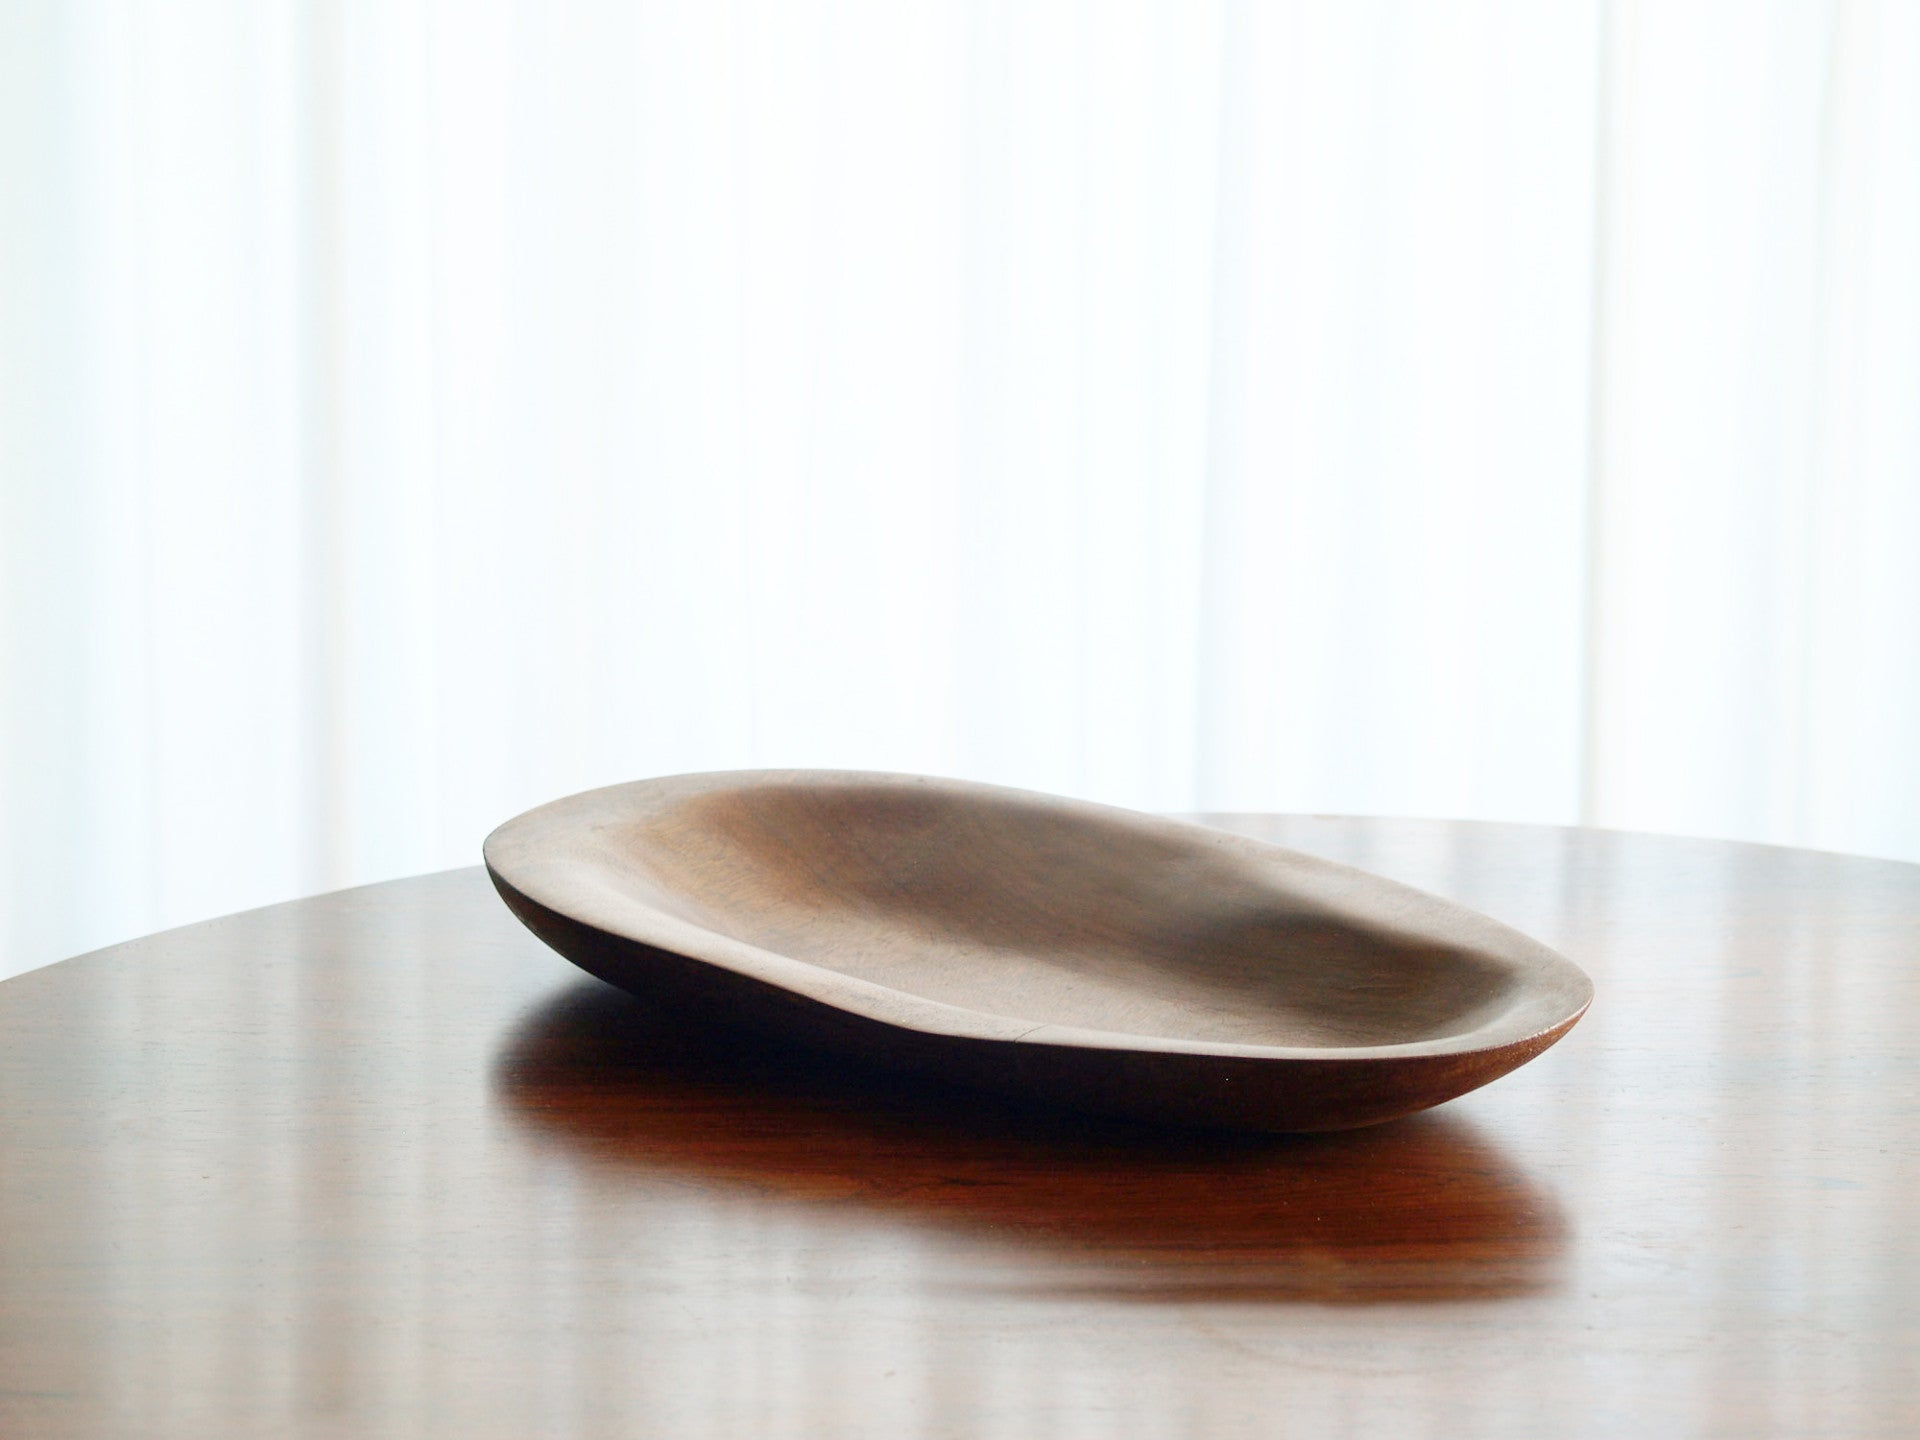 Coupe monoxyle ovale en sycomore, France (vers 1960)..Sycamore Ovoïd carved bowl, France (circa 1960)